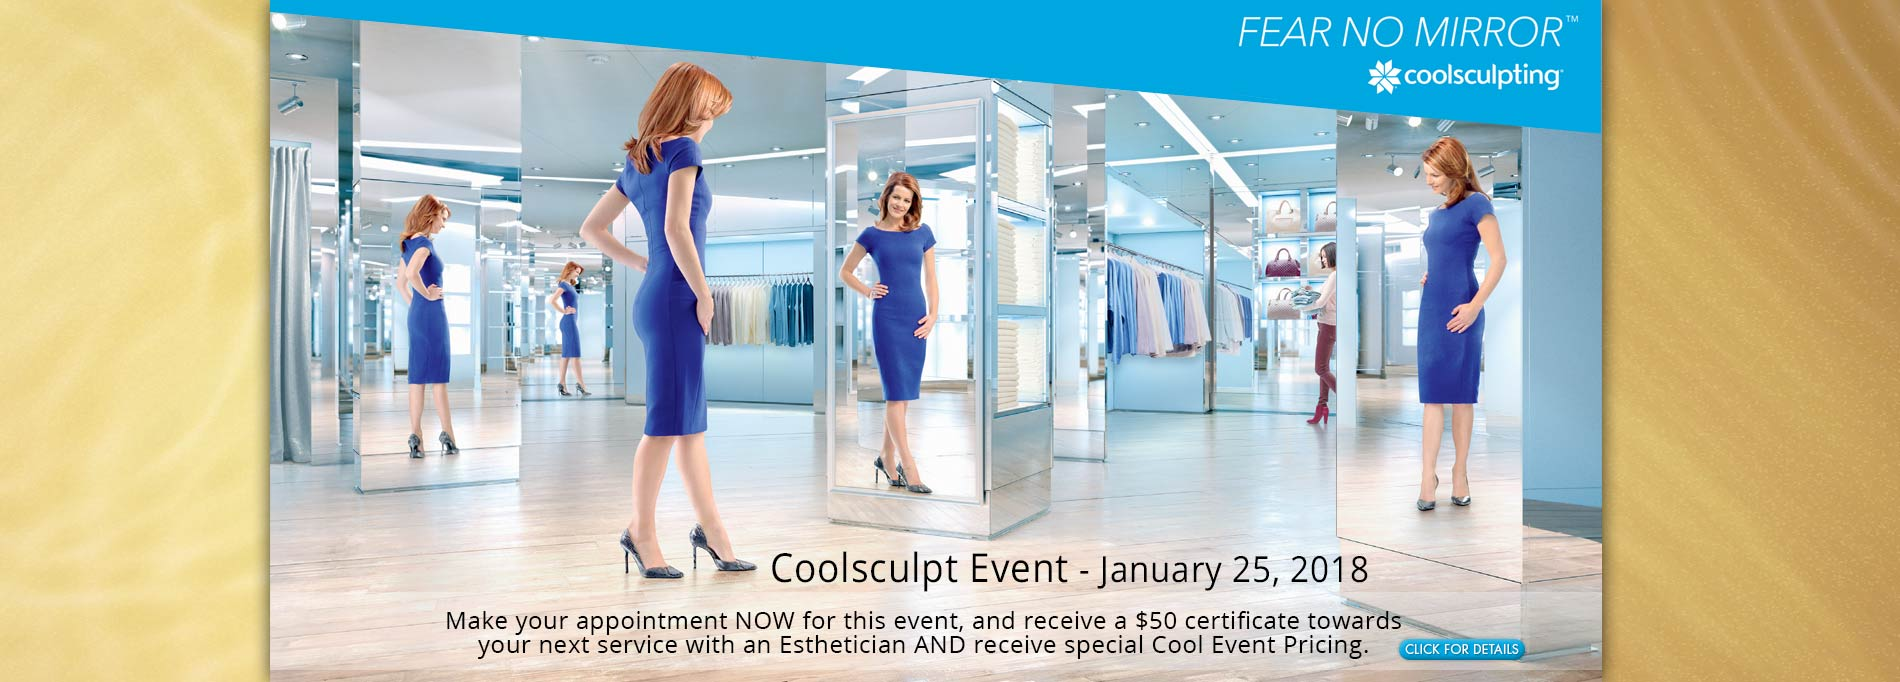 coolsculpting-1-25-18